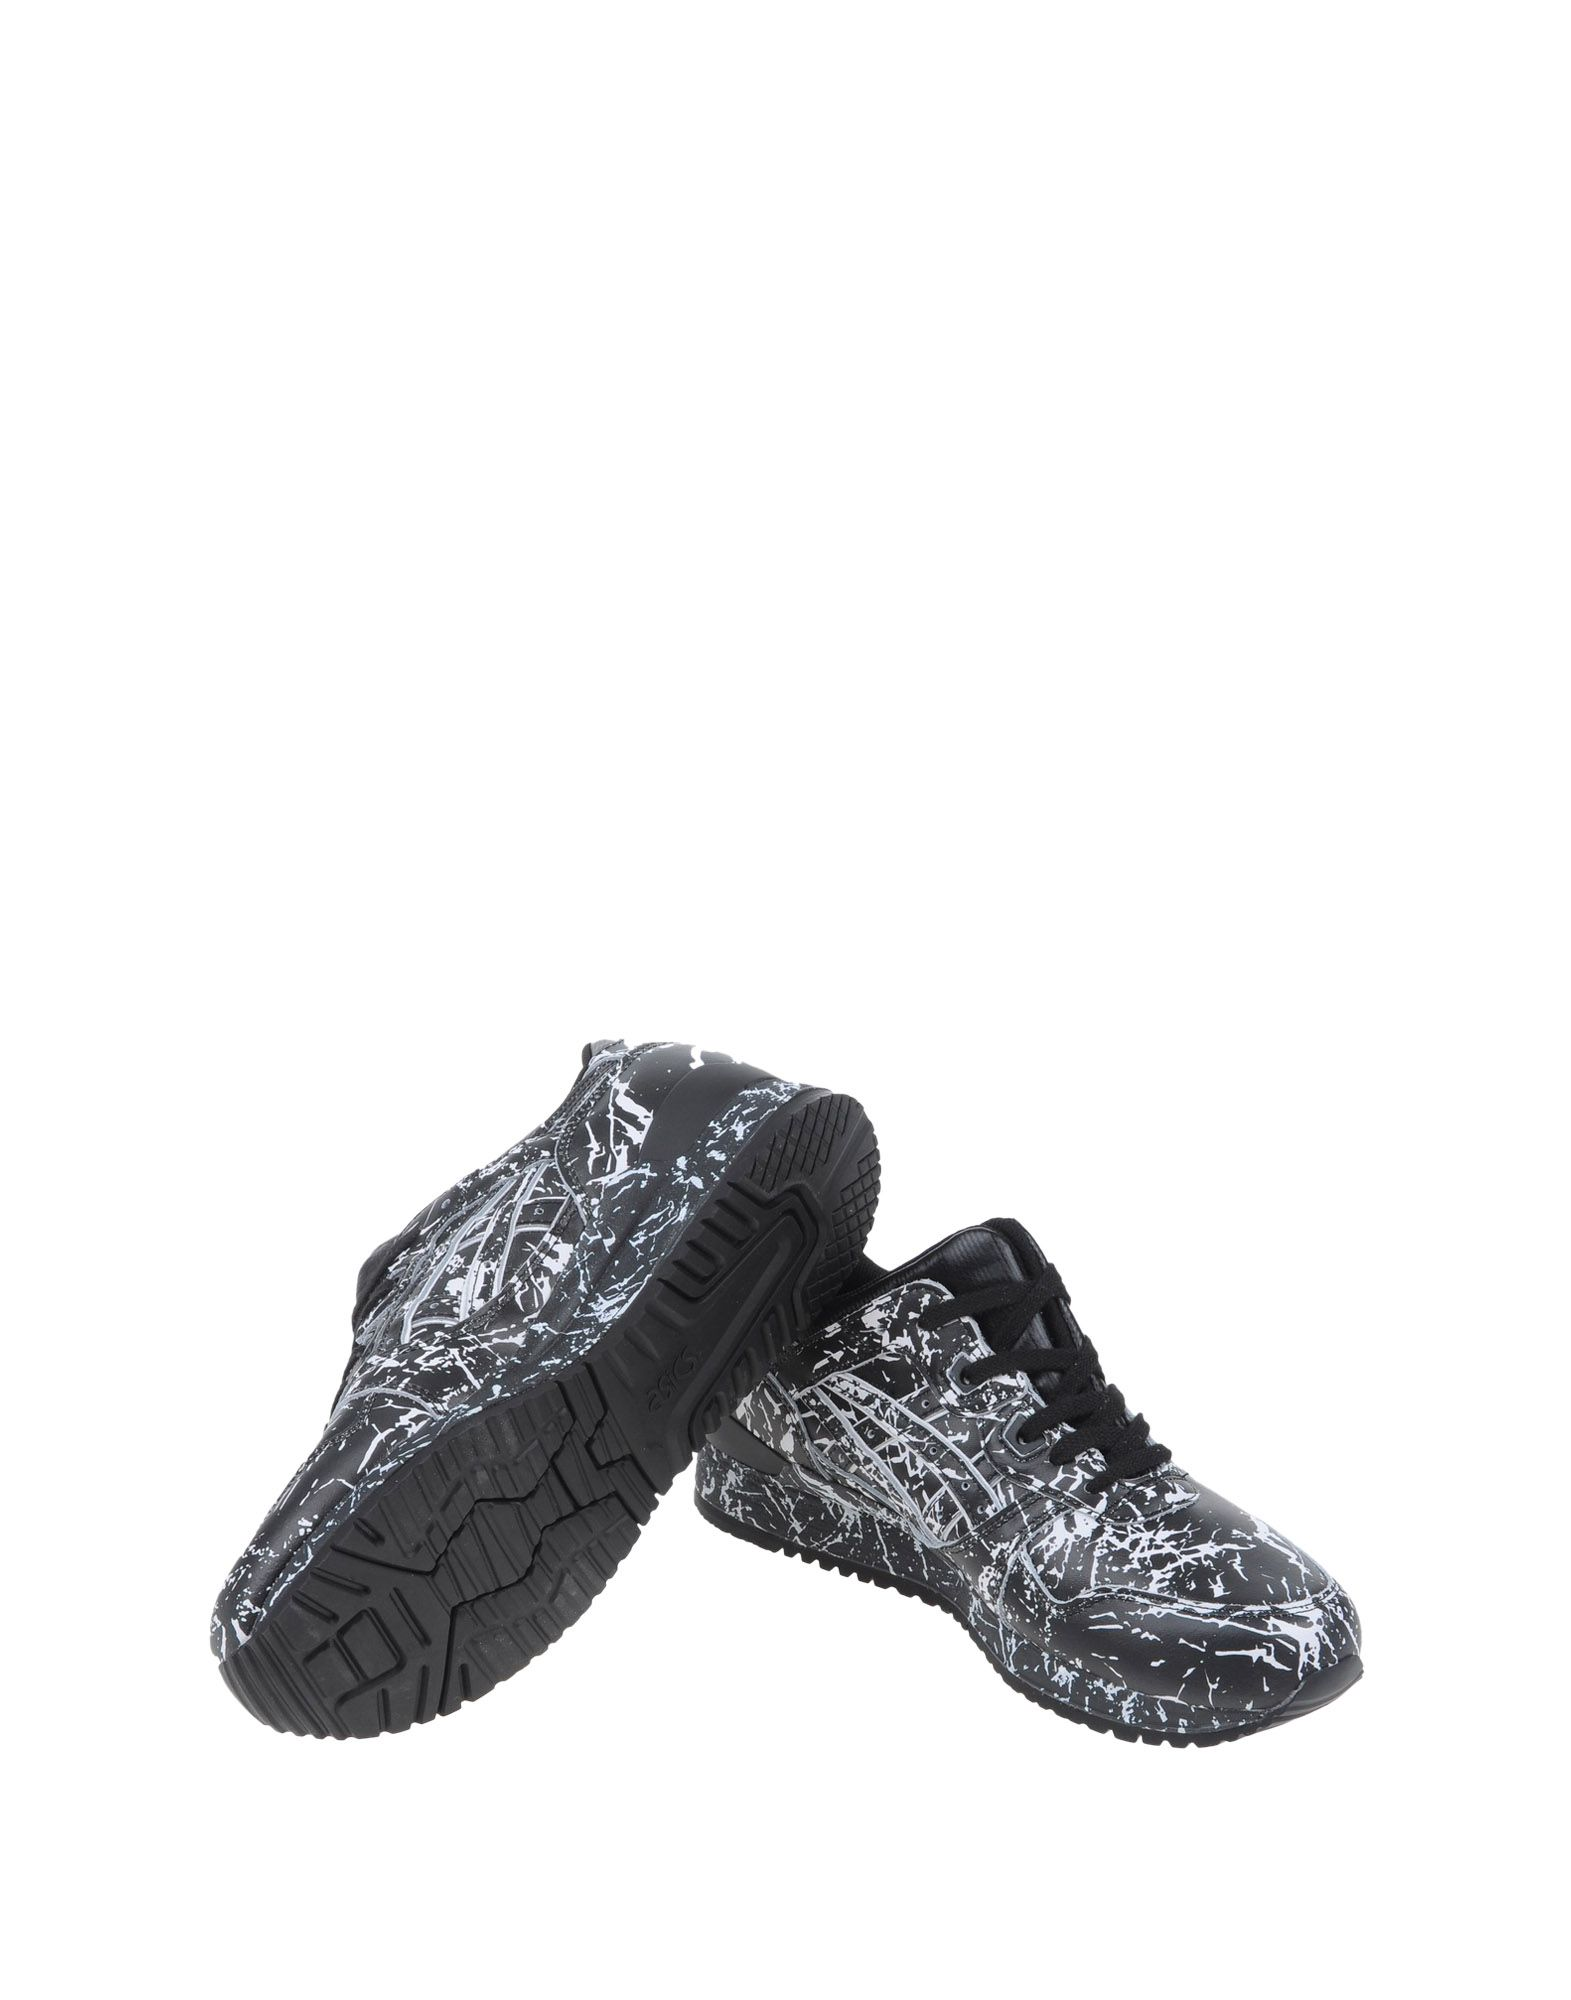 Sneakers Asics Tiger G.Lyte Iii - Femme - Sneakers Asics Tiger sur